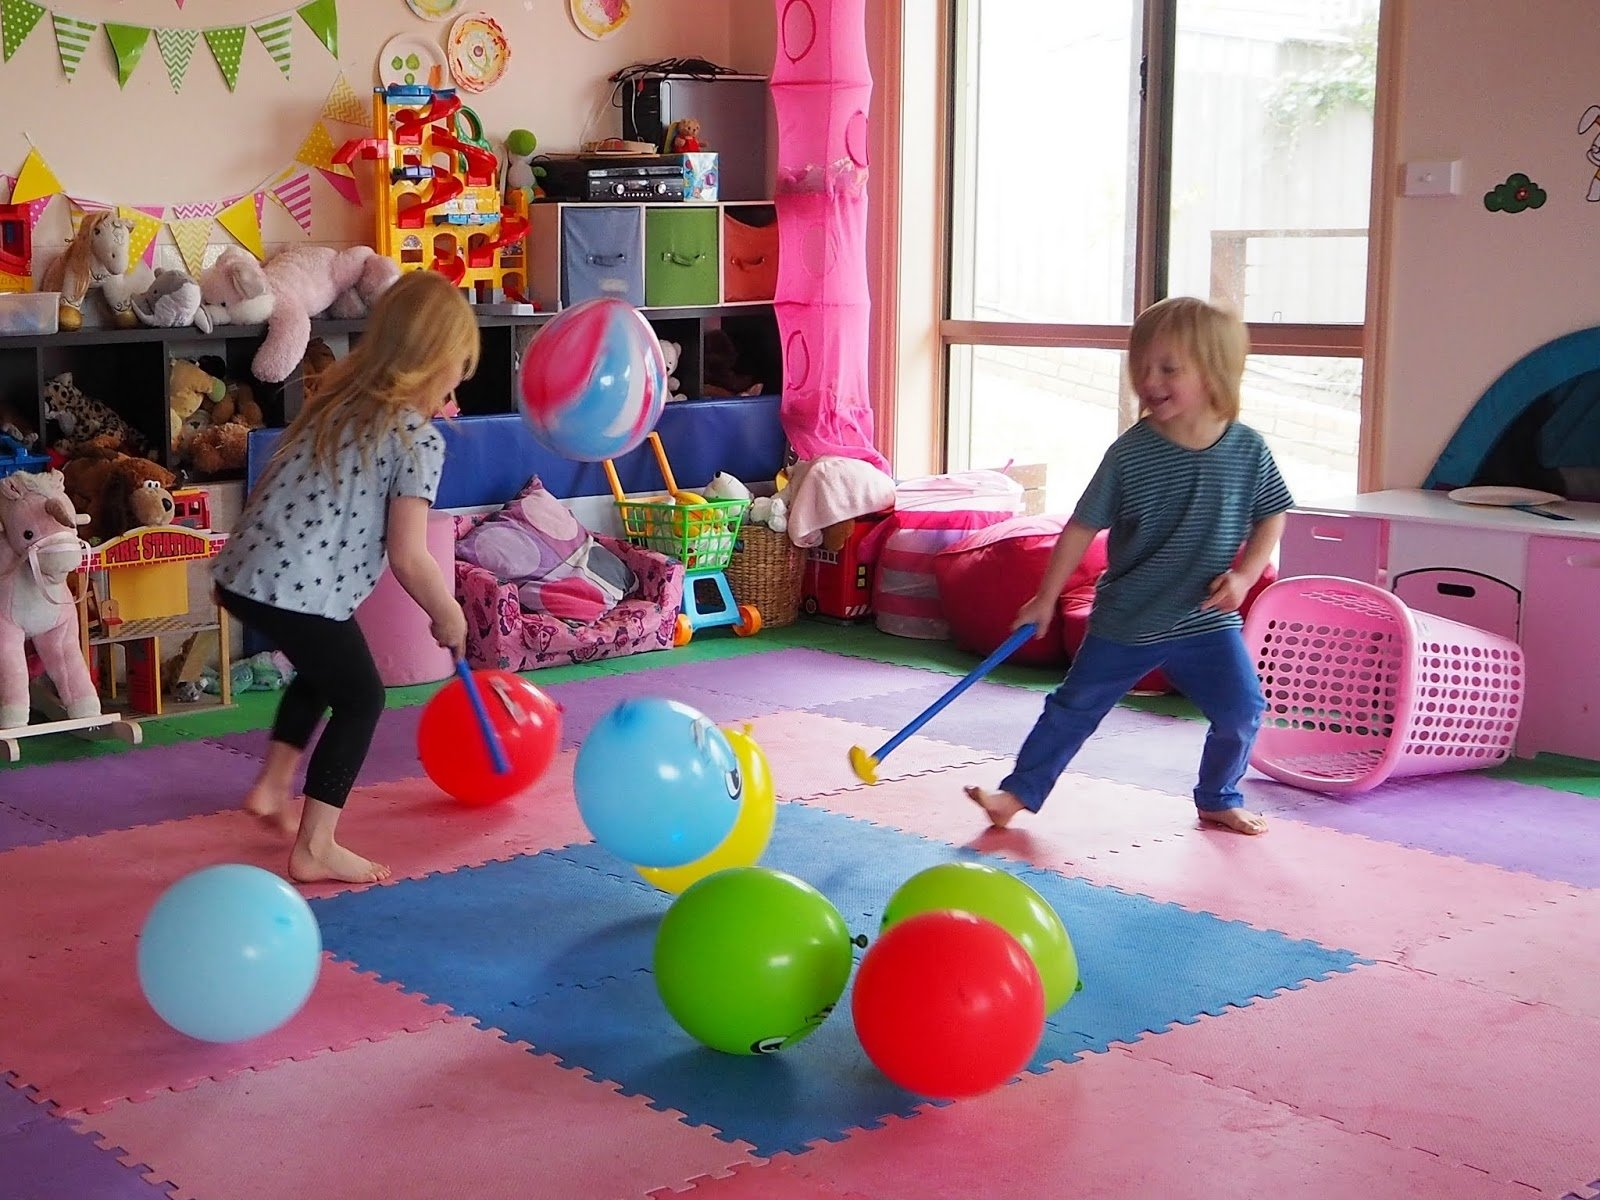 10 Spectacular Kids Birthday Party Game Ideas strikingly idea birthday party game ideas for kids indoors learn 2021